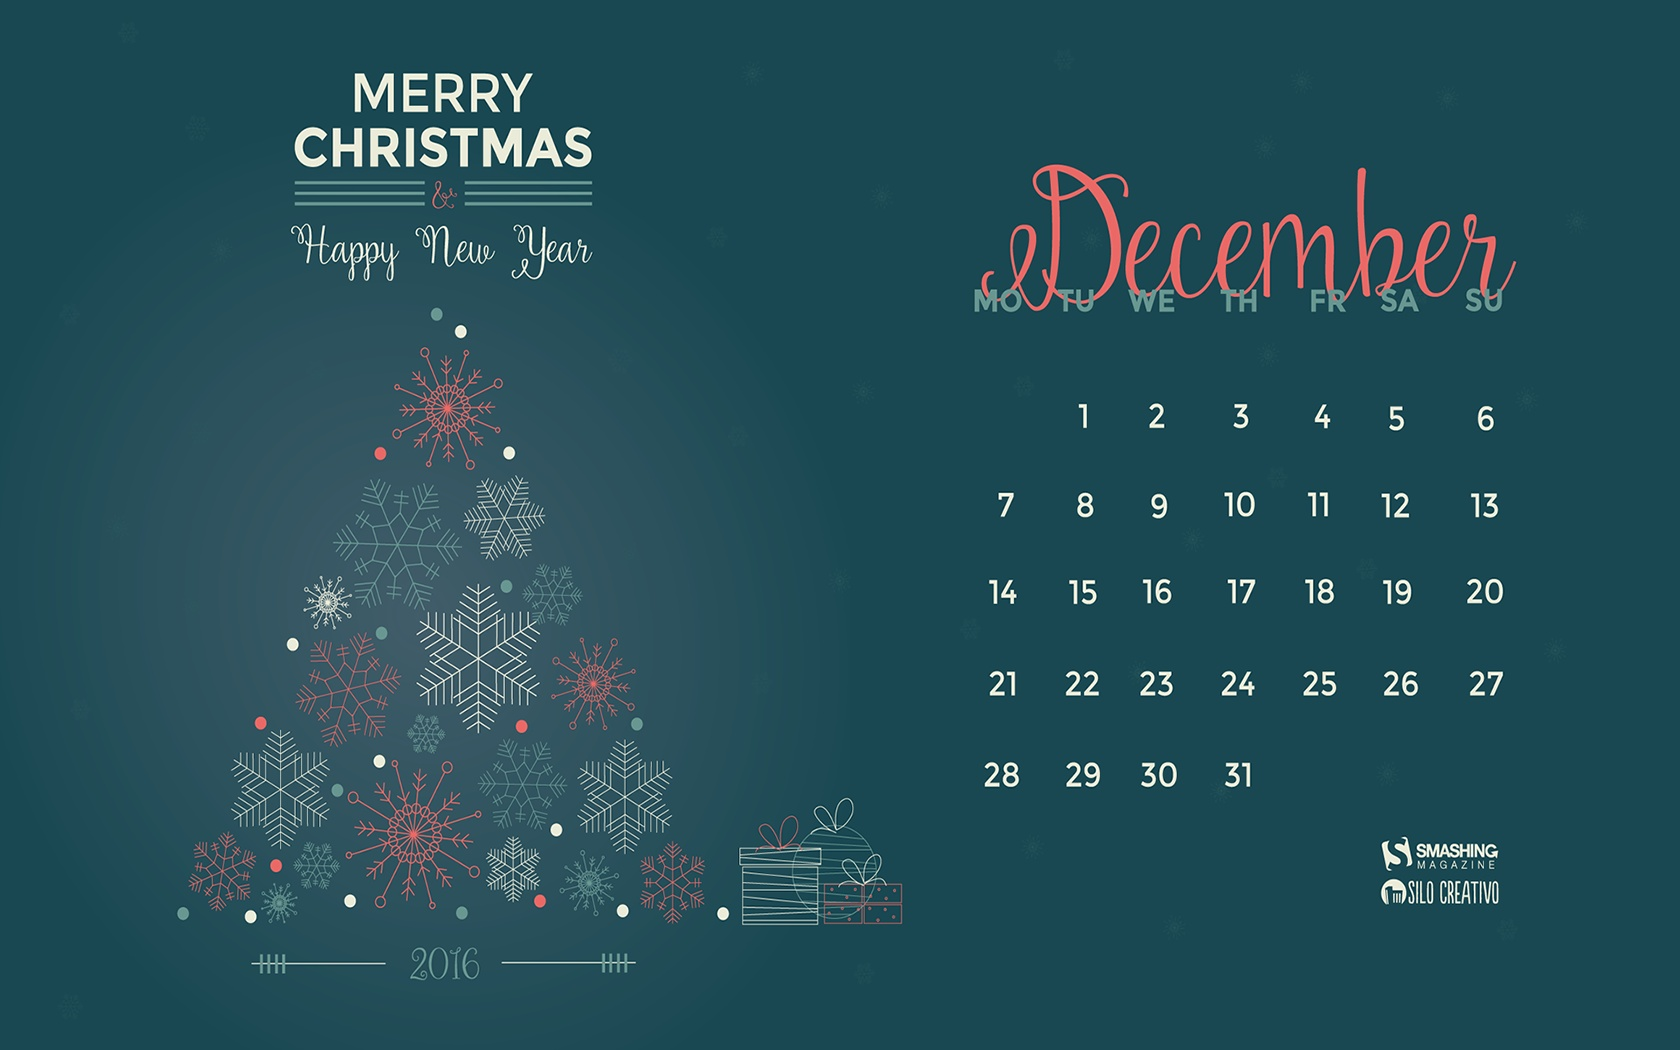 Month calendar Christmas desktop wallpaper 52529